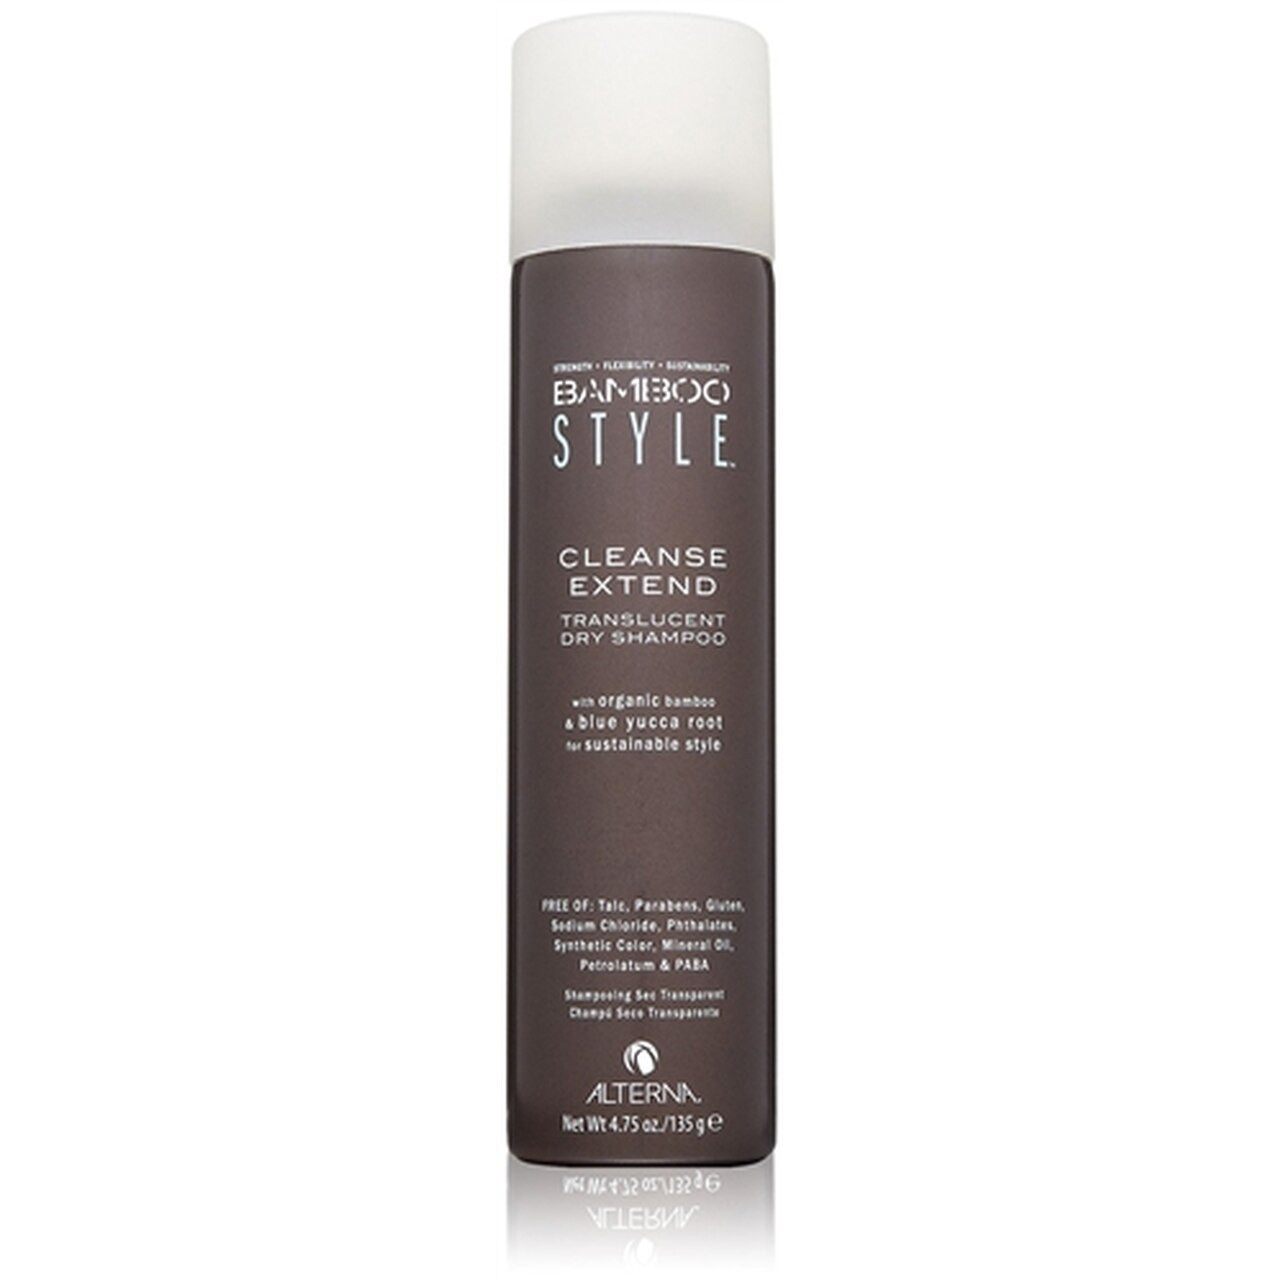 Alterna Bamboo Cleanse Extend Translucent Shampoo